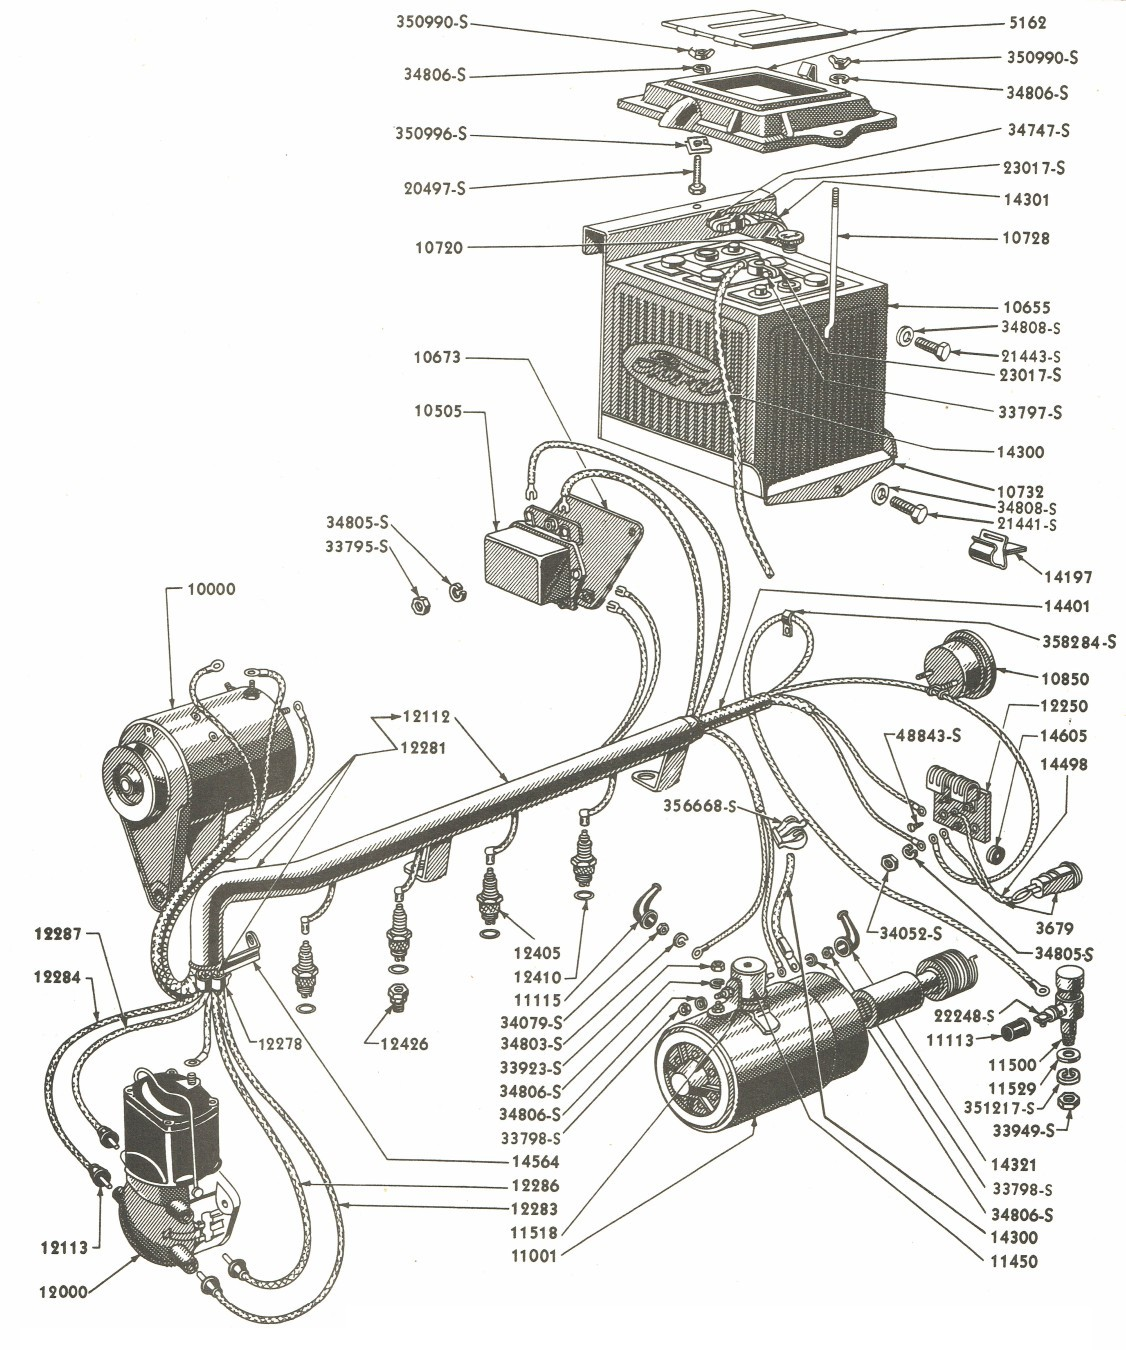 hight resolution of ford naa generator wiring diagram wiring diagram blog